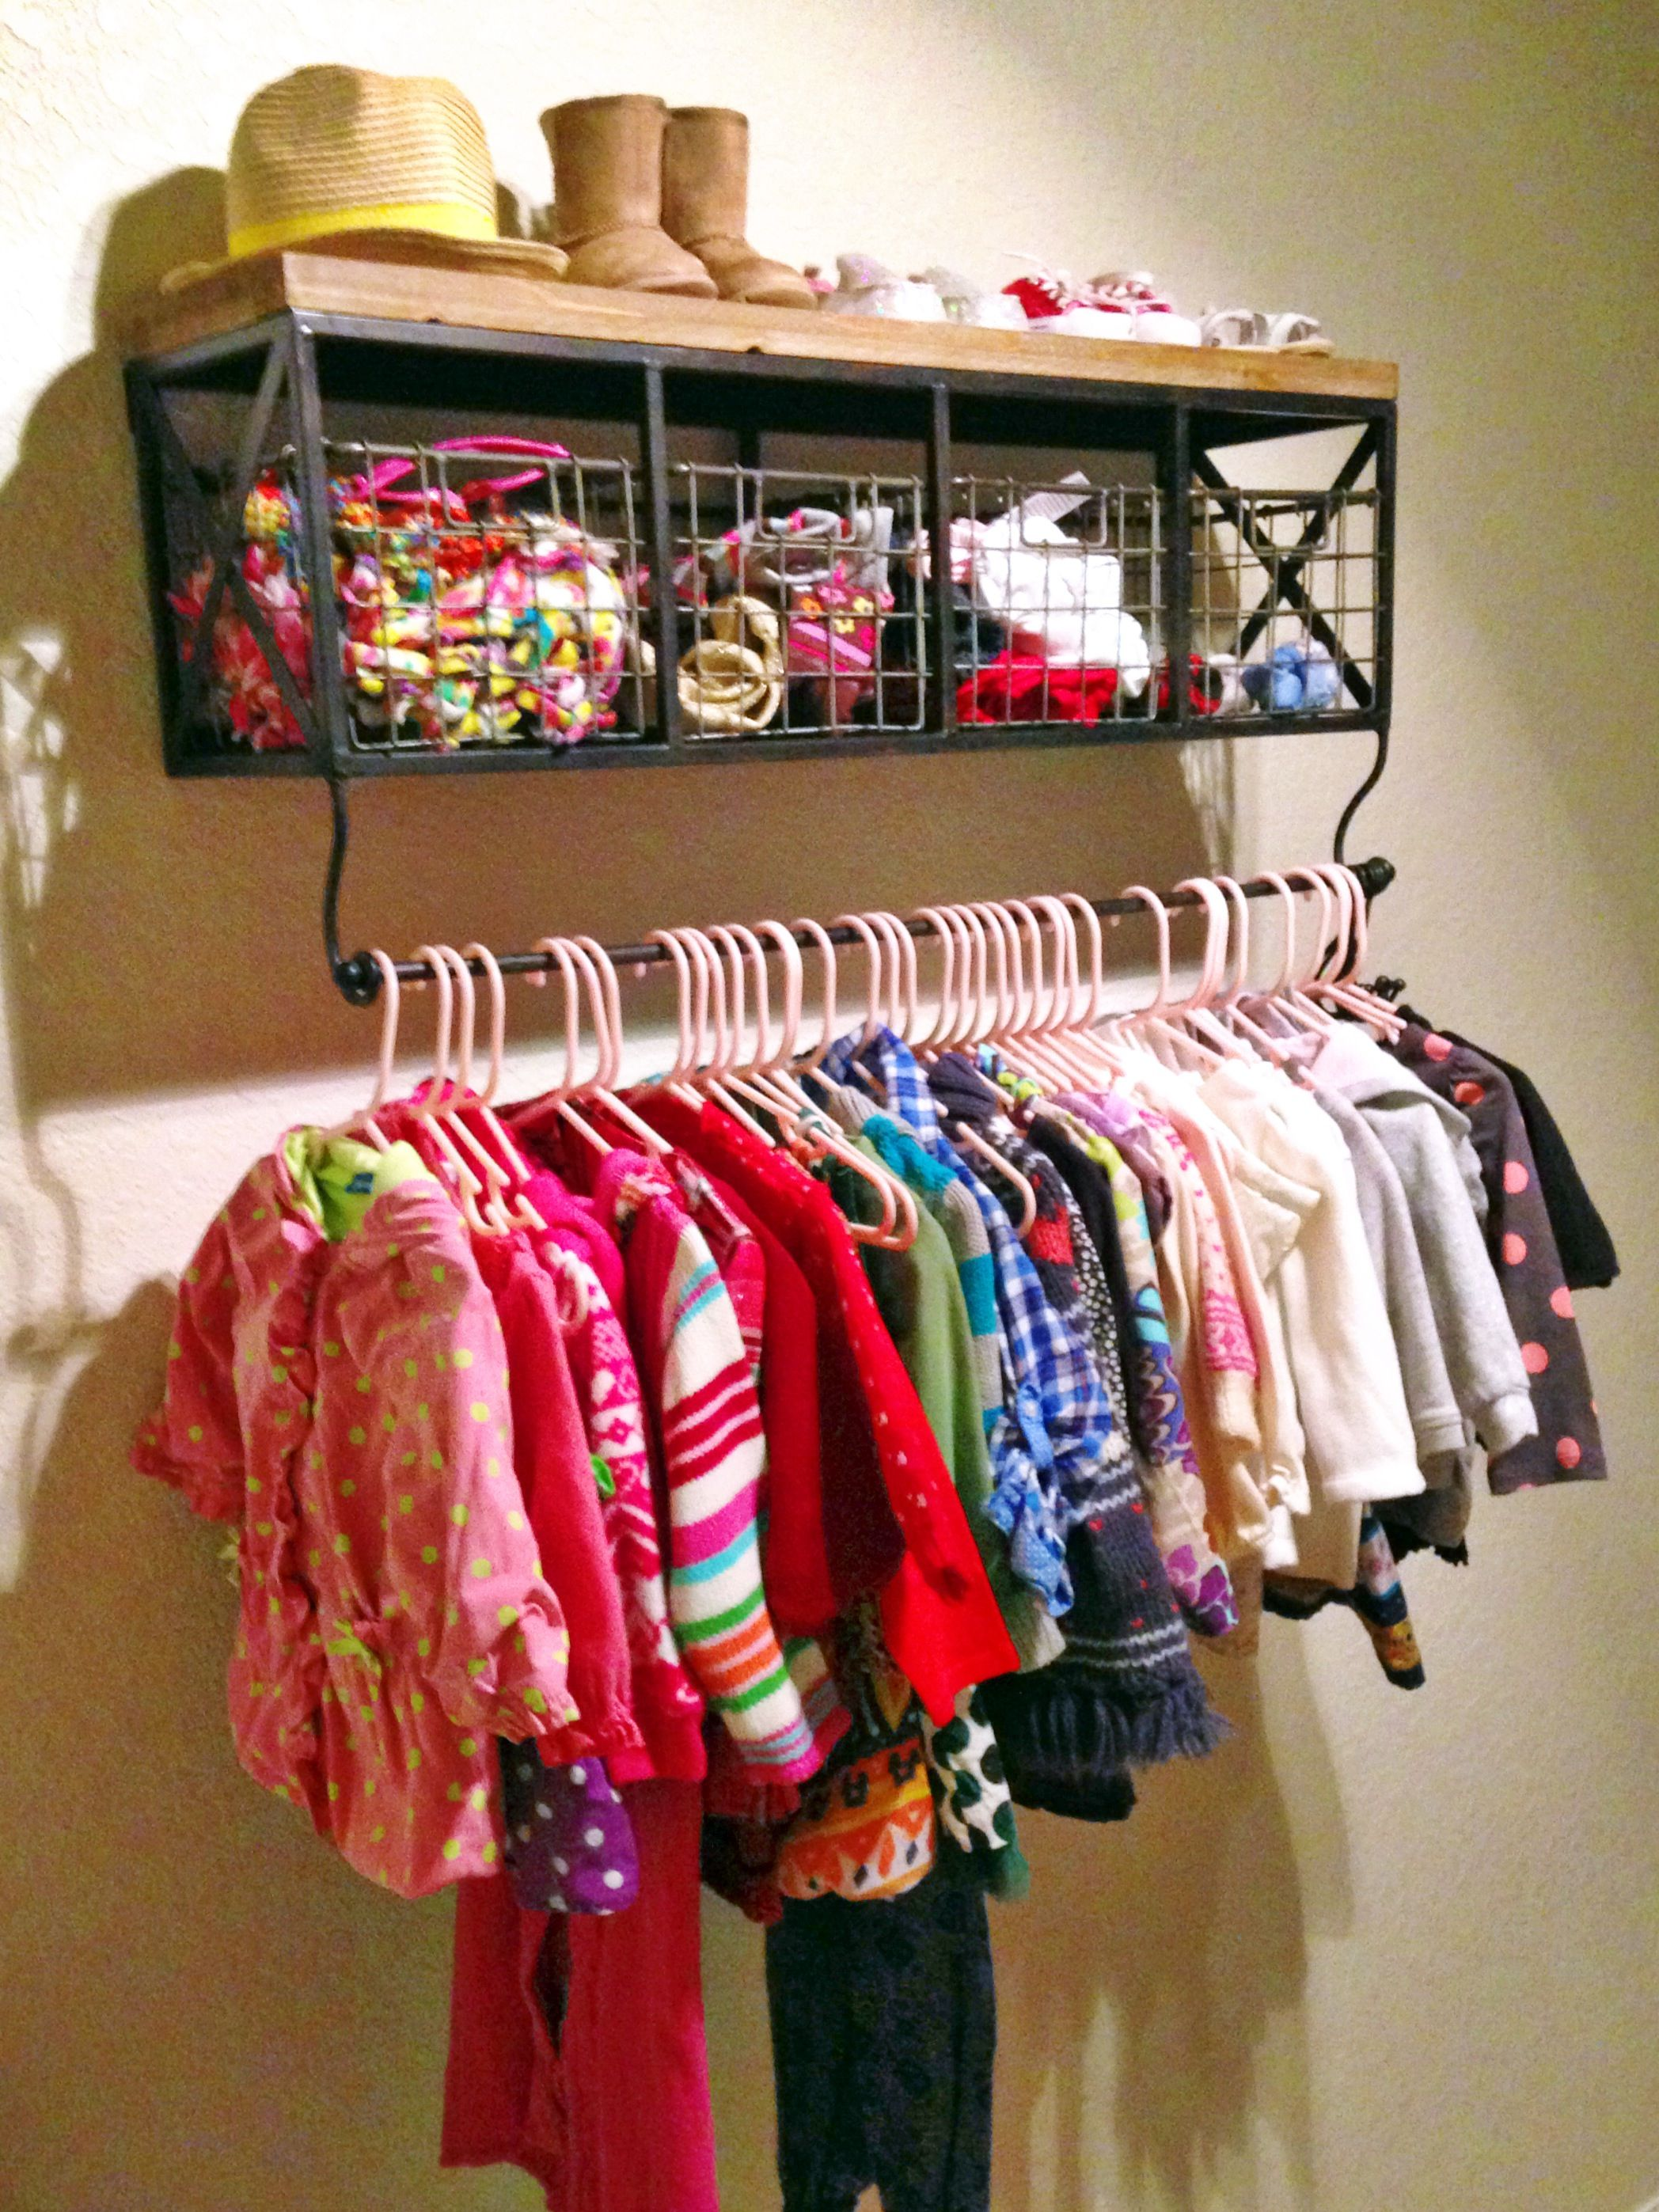 Hobby Lobby Shelf Used As Wardrobe Closet For A Nursery